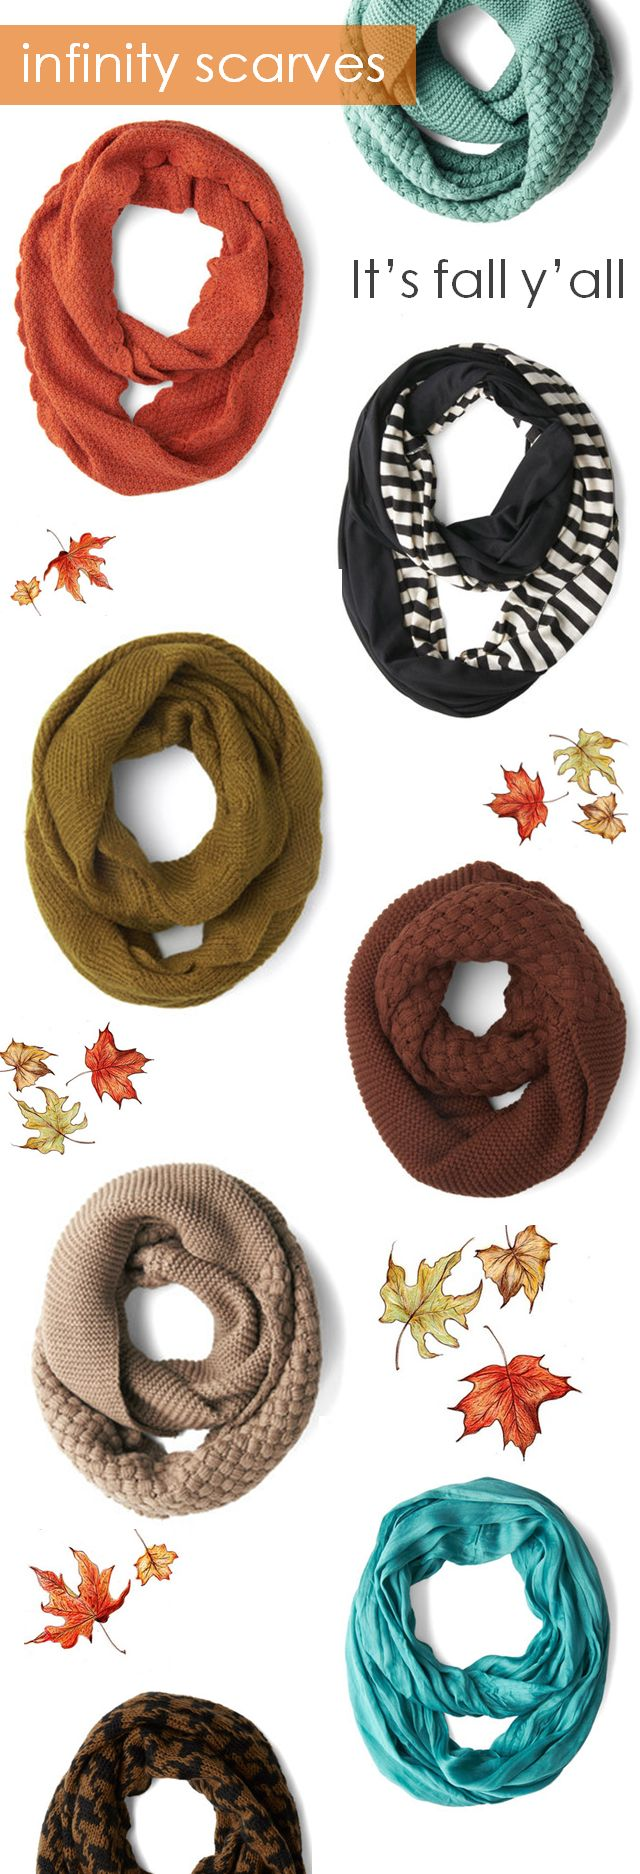 Infinity scarves - fall styles now 20% off. plus enjoy an extra 10% off (even on sale items) with code: C6N0U3MI4XPCJ8U7